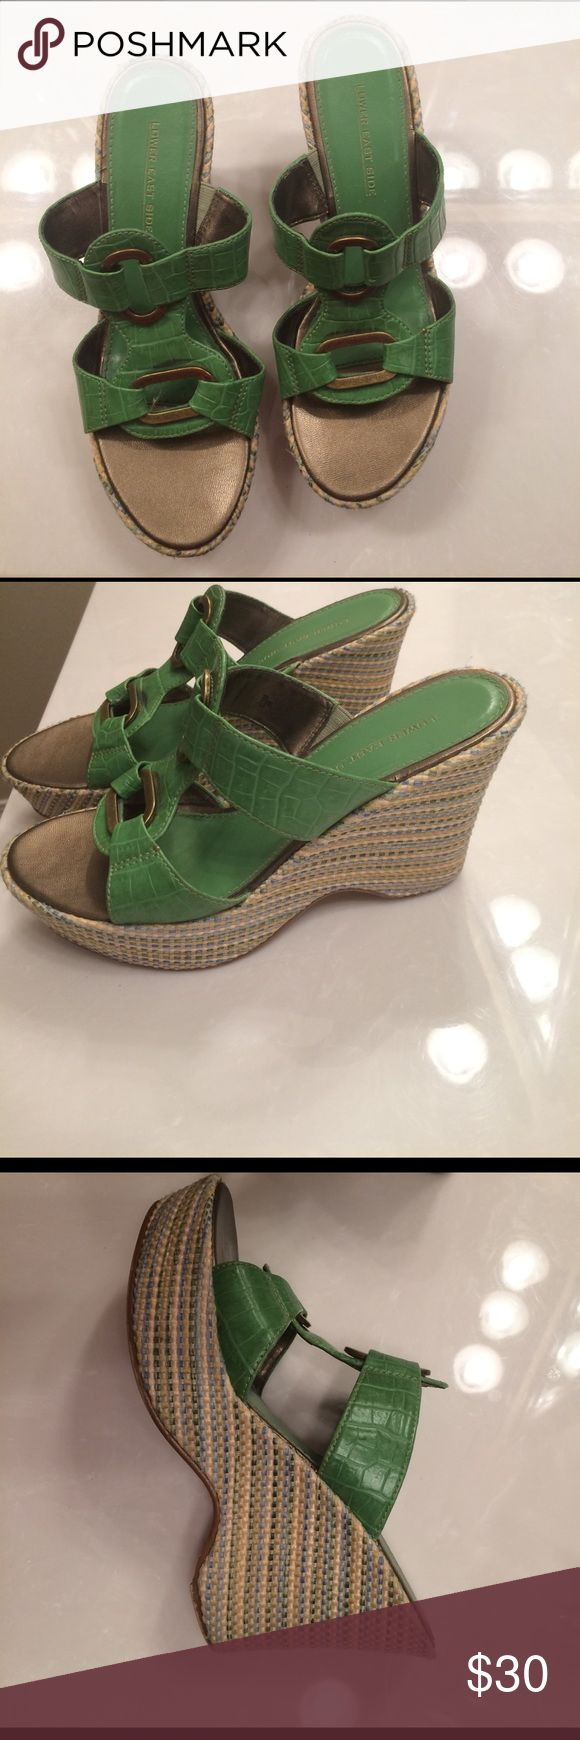 Stylish green wedges Green wedges with gold buckles- sides are green/yellow/blue- perfect for St. Patrick's day ☘️💚 these shoes are flawless. Wedges are 4 inches and front is 1.5 inches lower east side Shoes Wedges